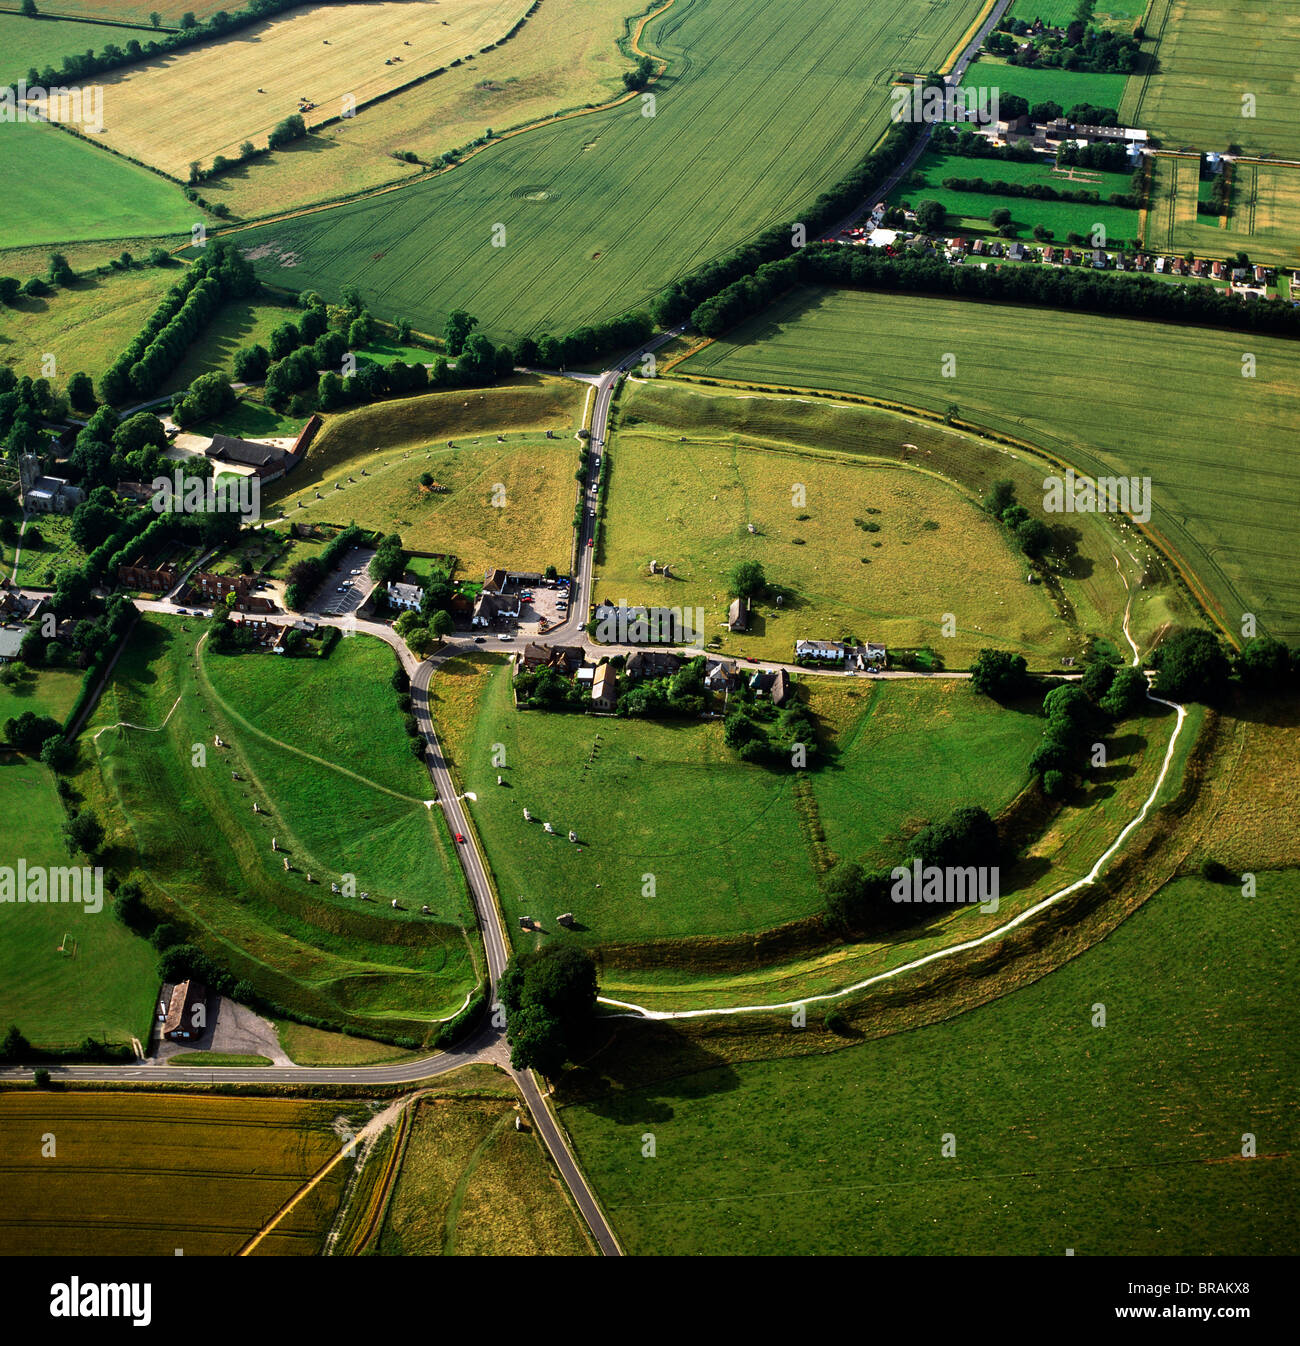 Aerial image of Avebury, Neolithic Monument, site of a large henge and several stone circles, UNESCO, Wiltshire, - Stock Image